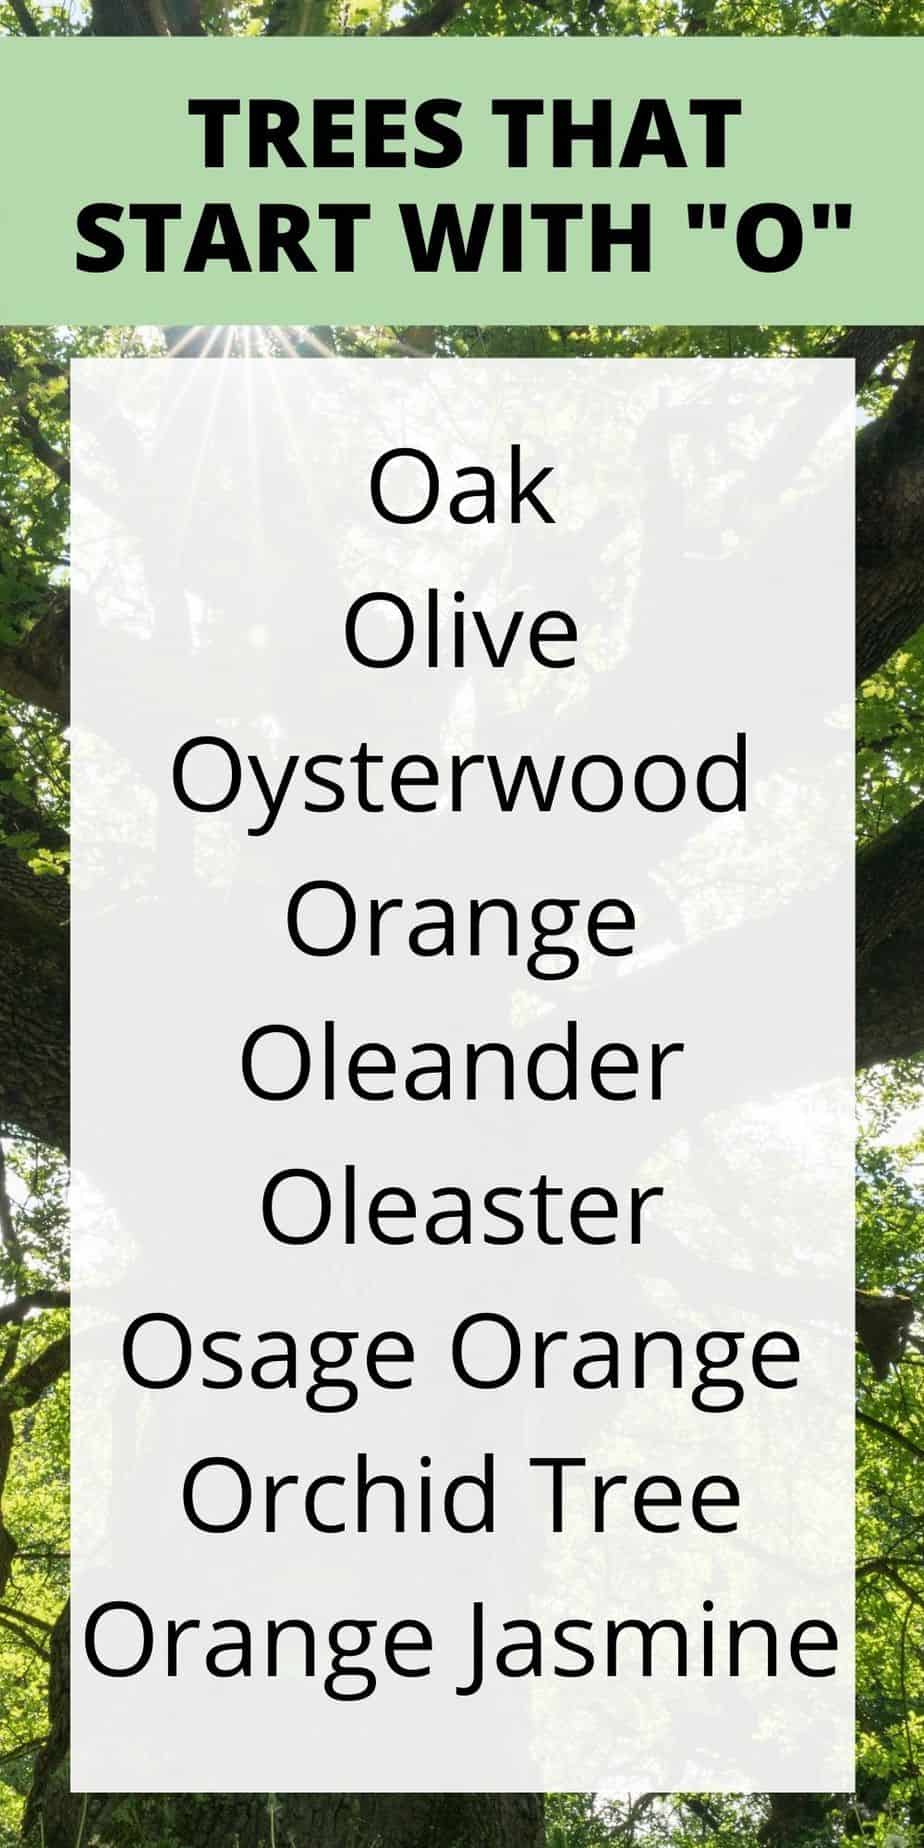 Trees that start with o